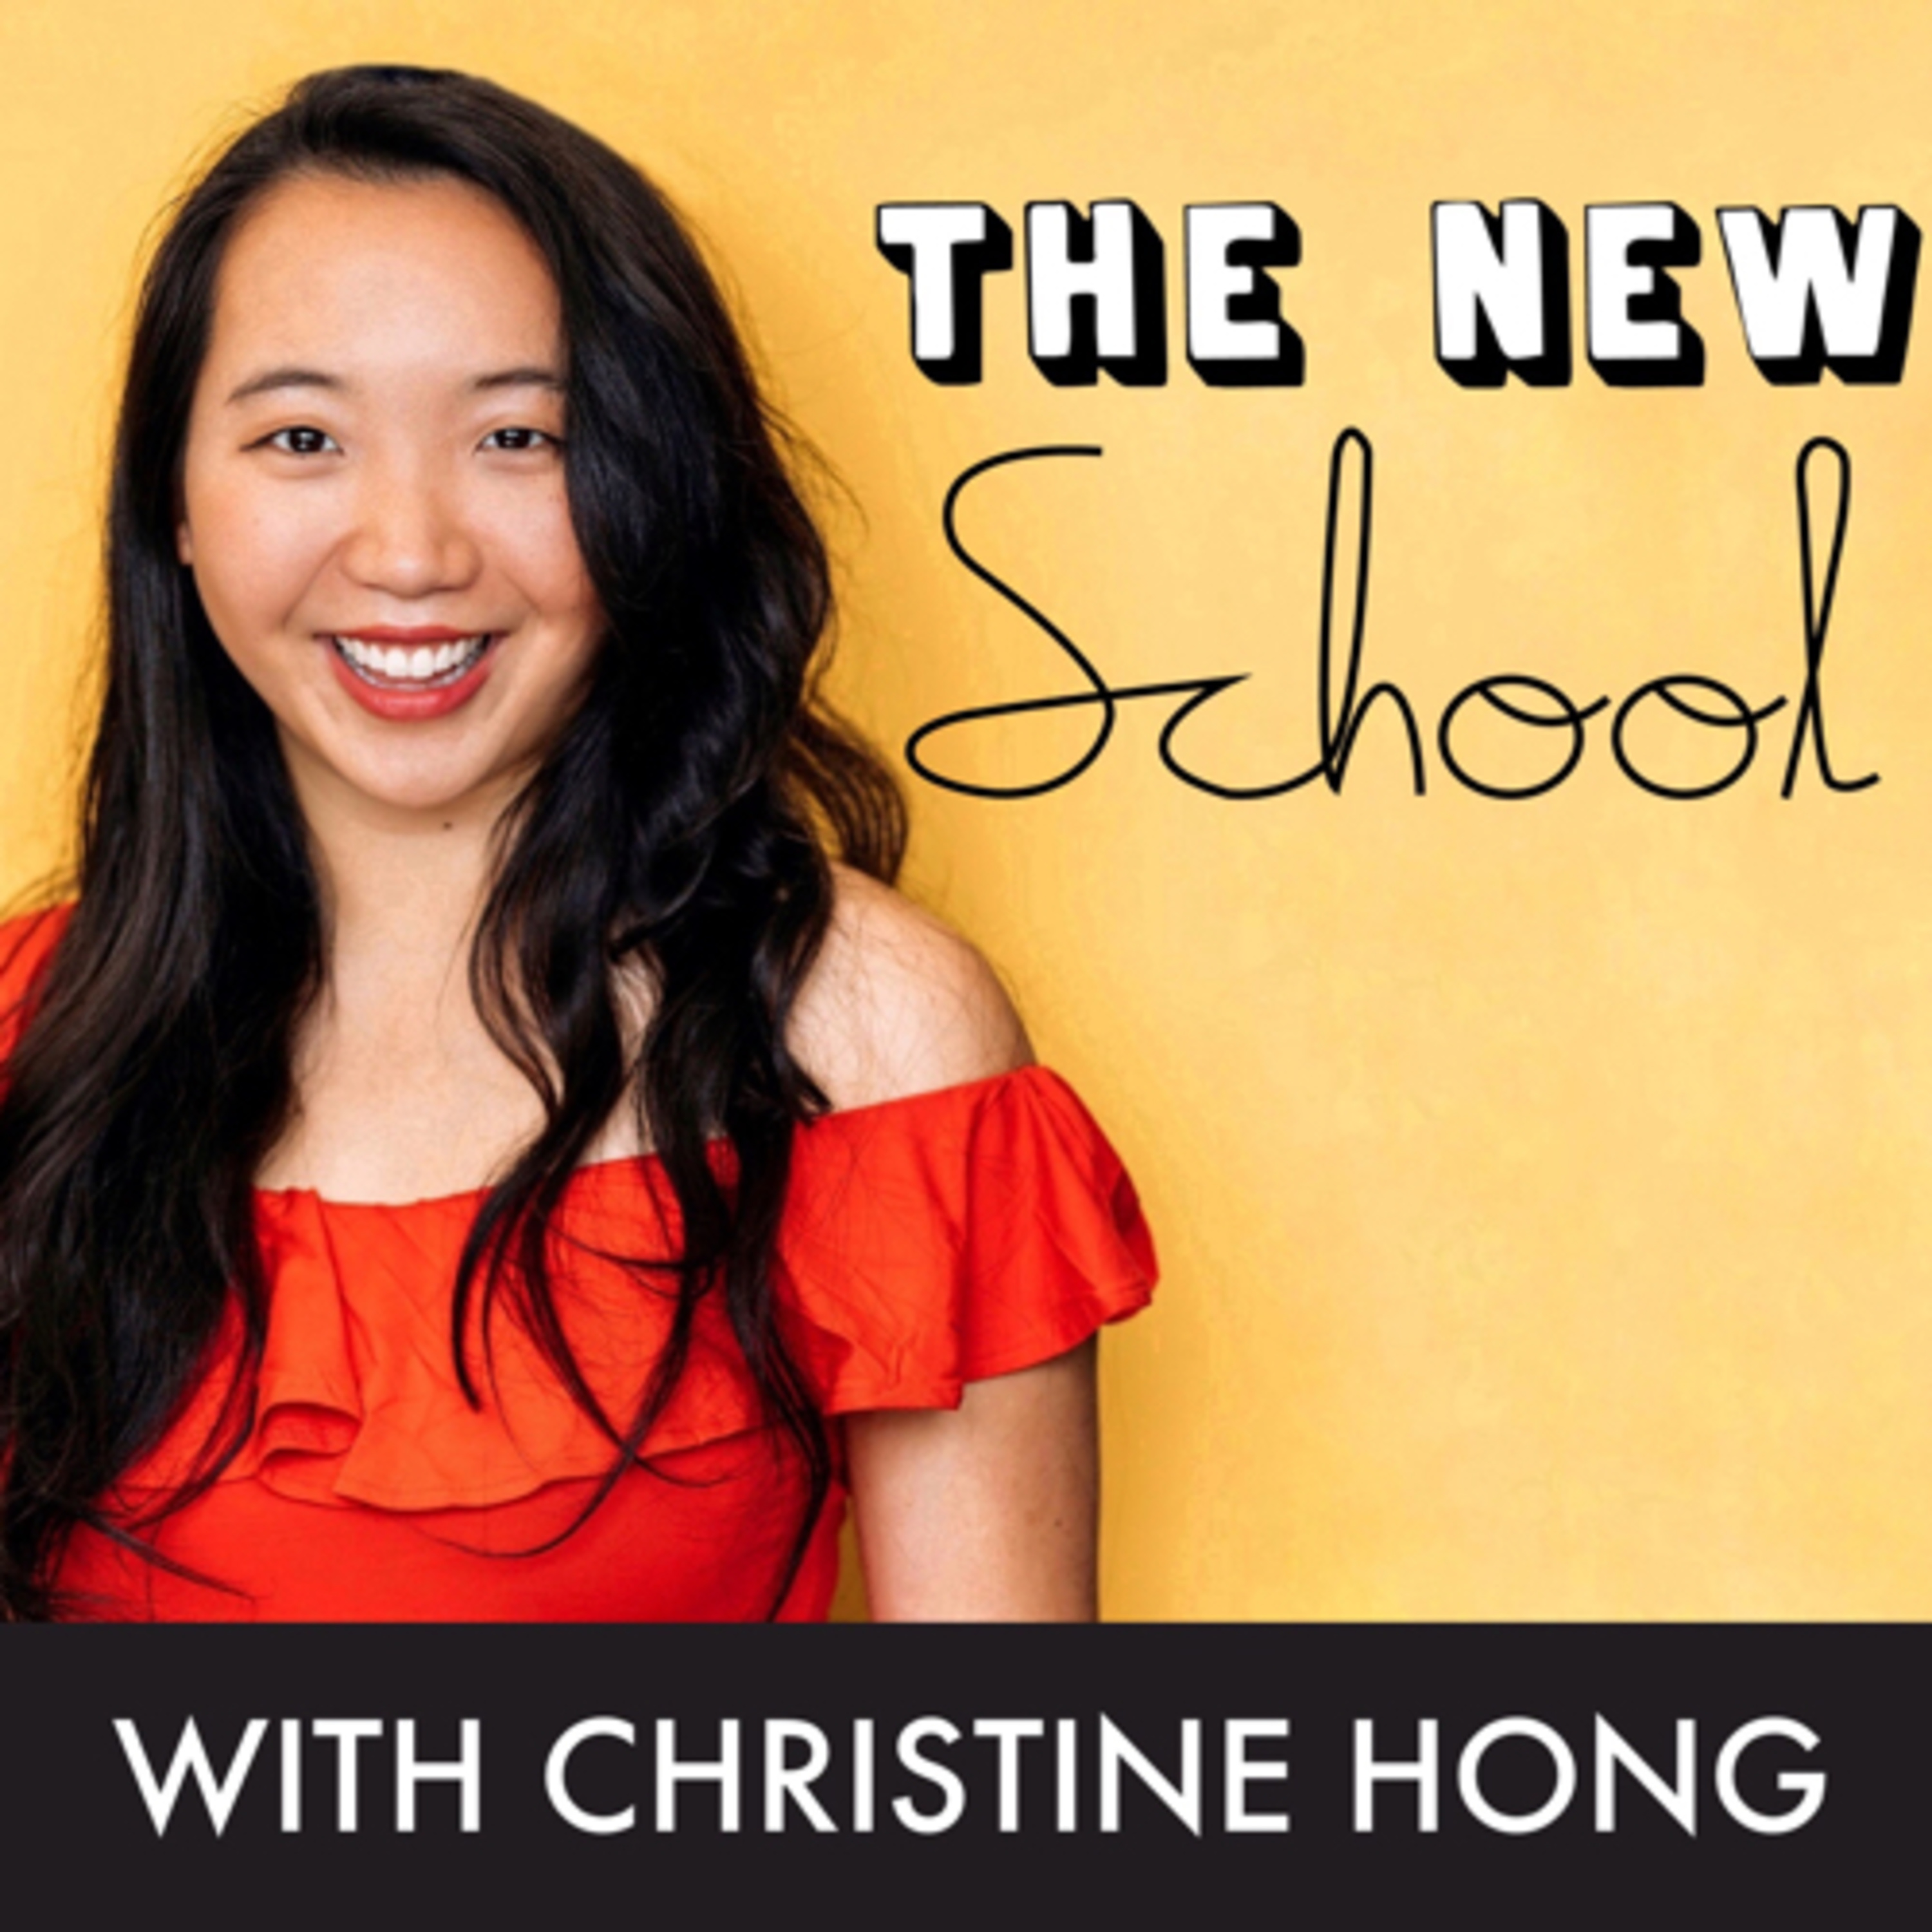 The New School with Christine Hong